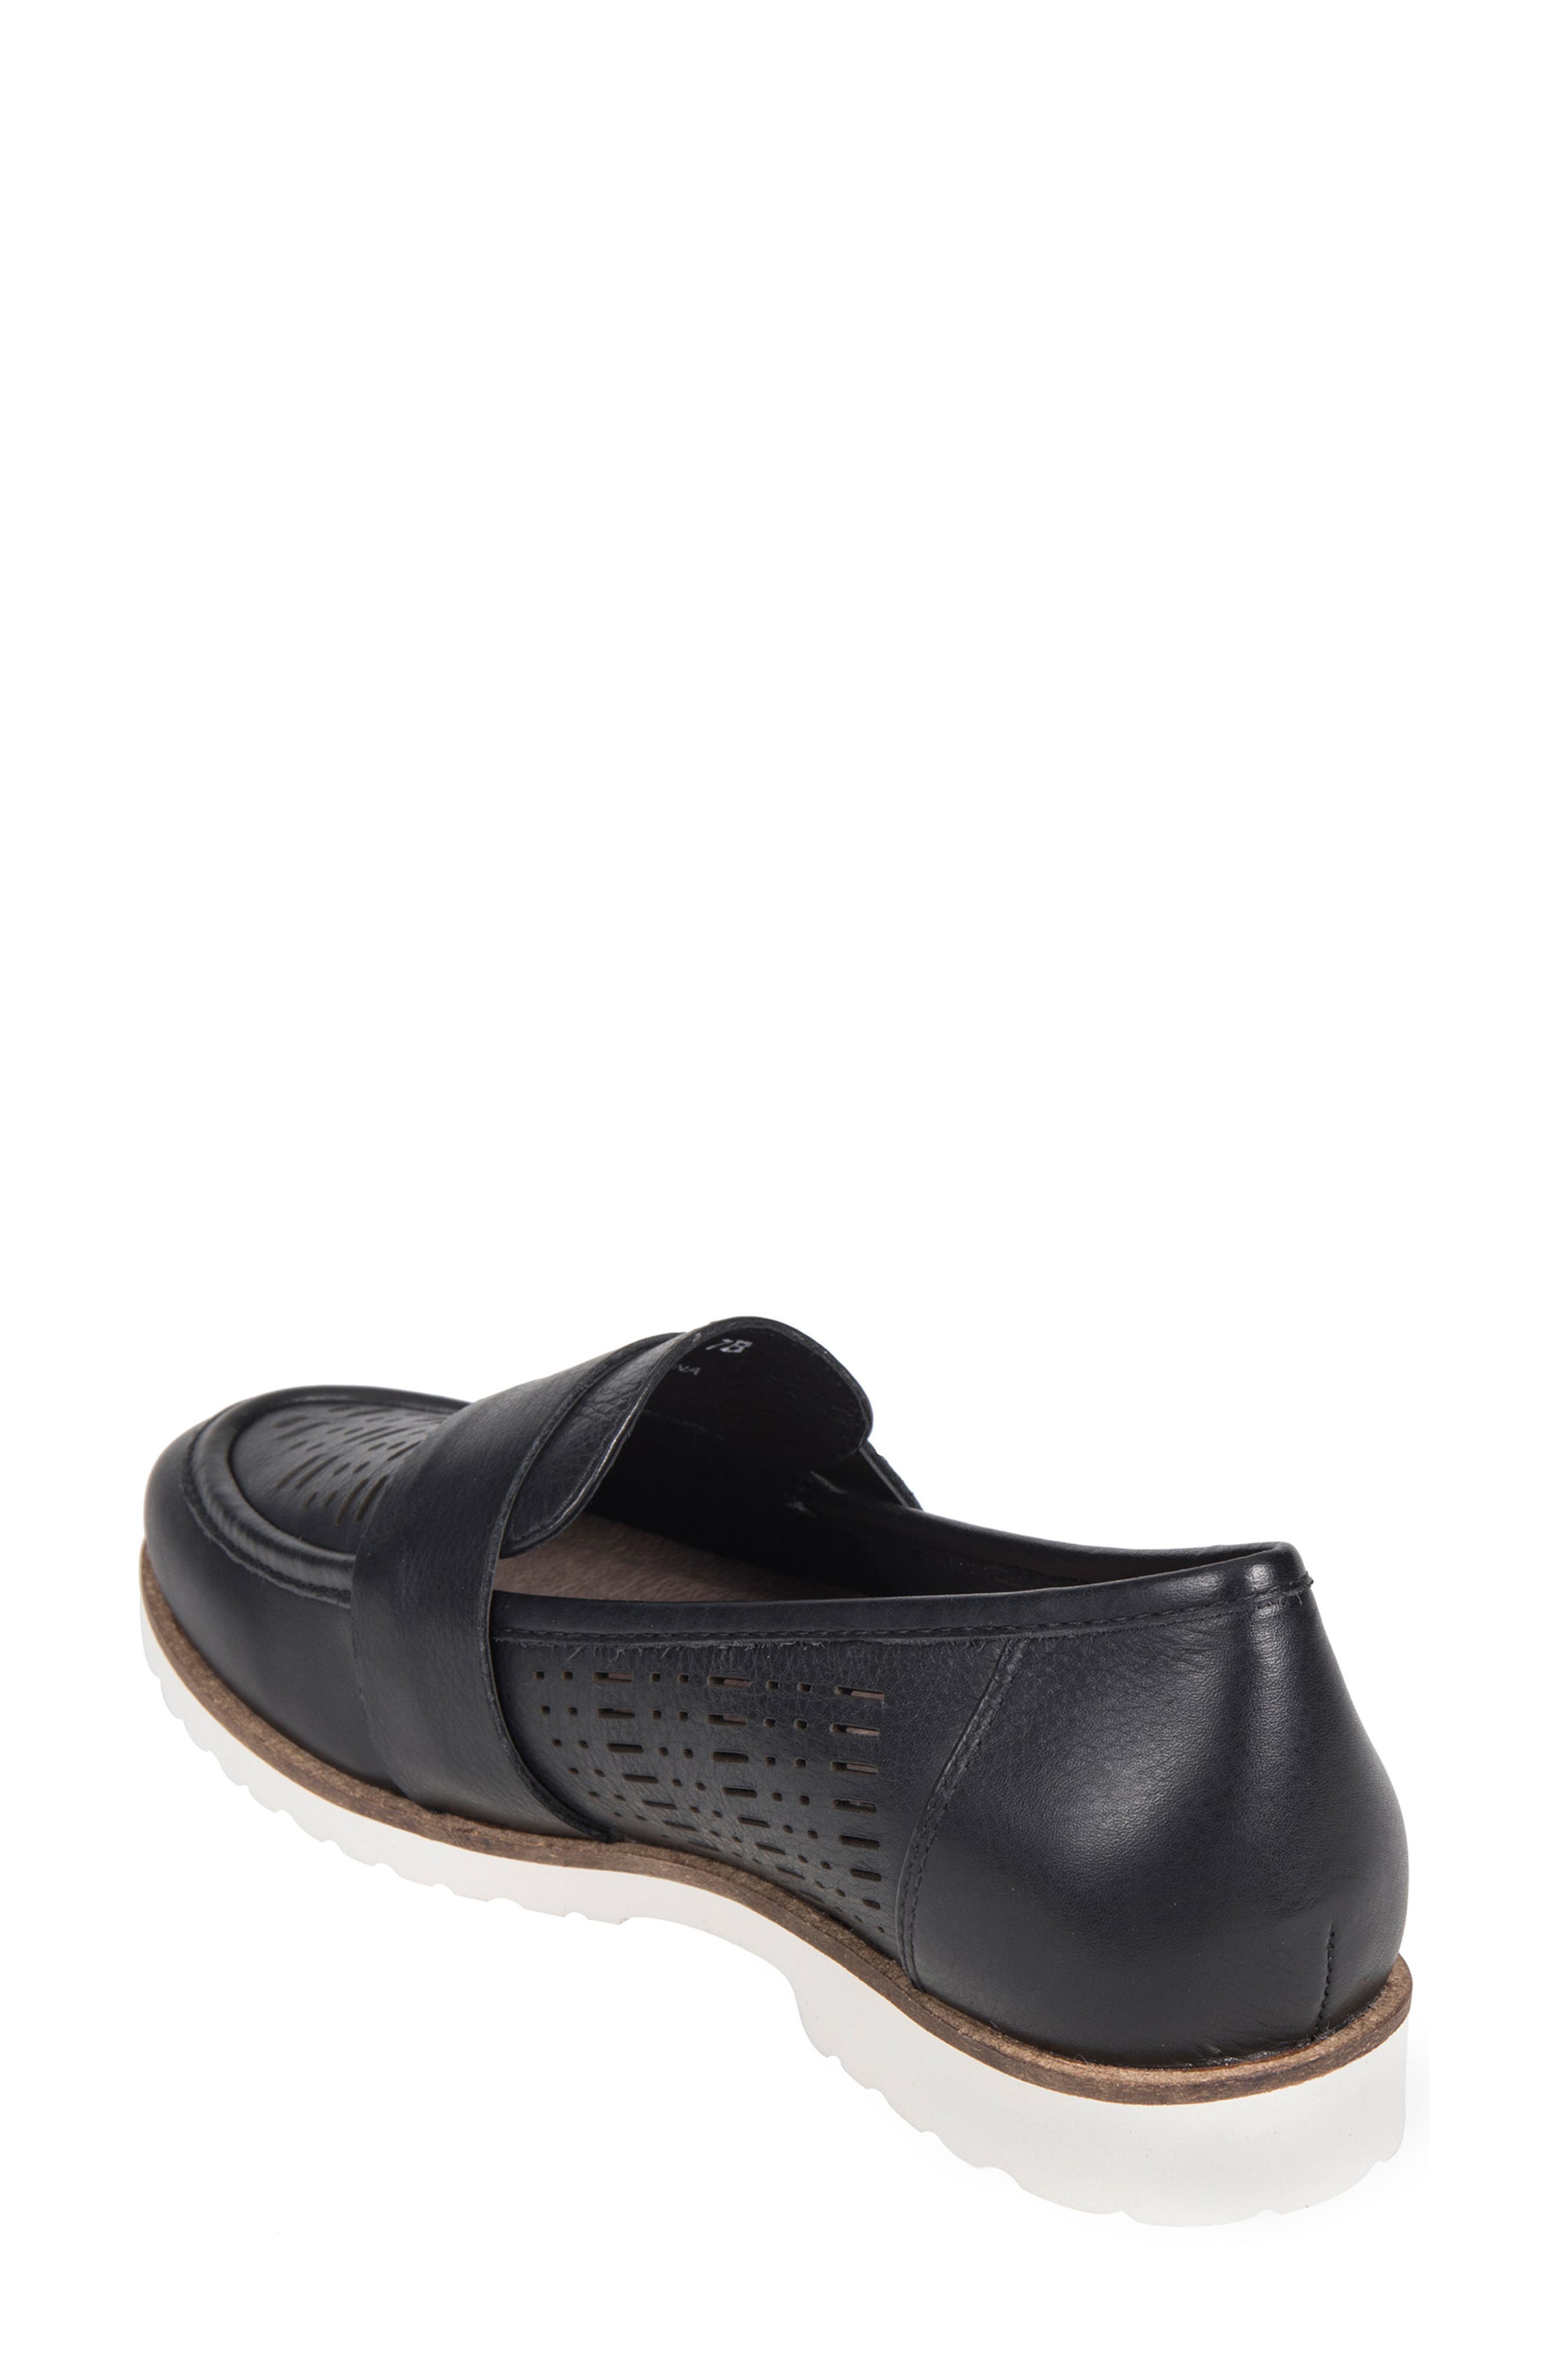 Masio Loafer,                             Alternate thumbnail 2, color,                             001